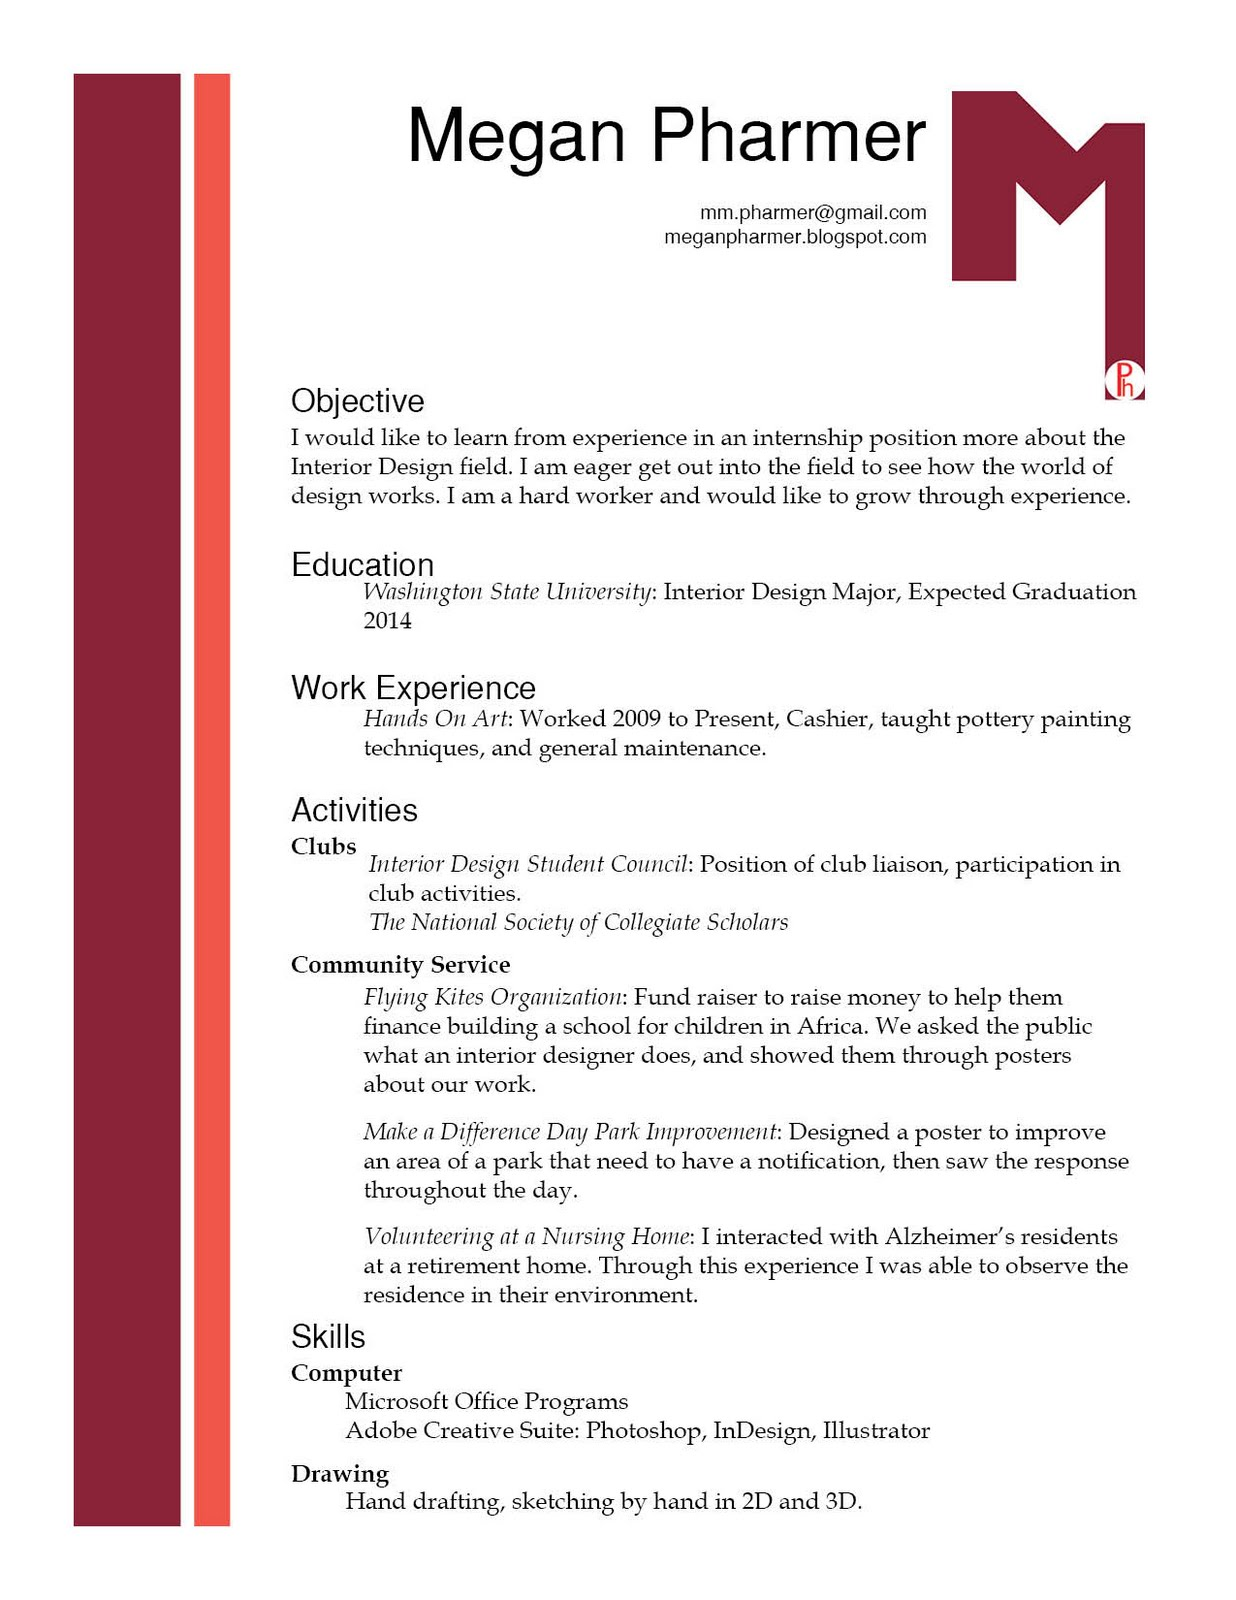 current education on resume - What Skills Should I Put On My Resume